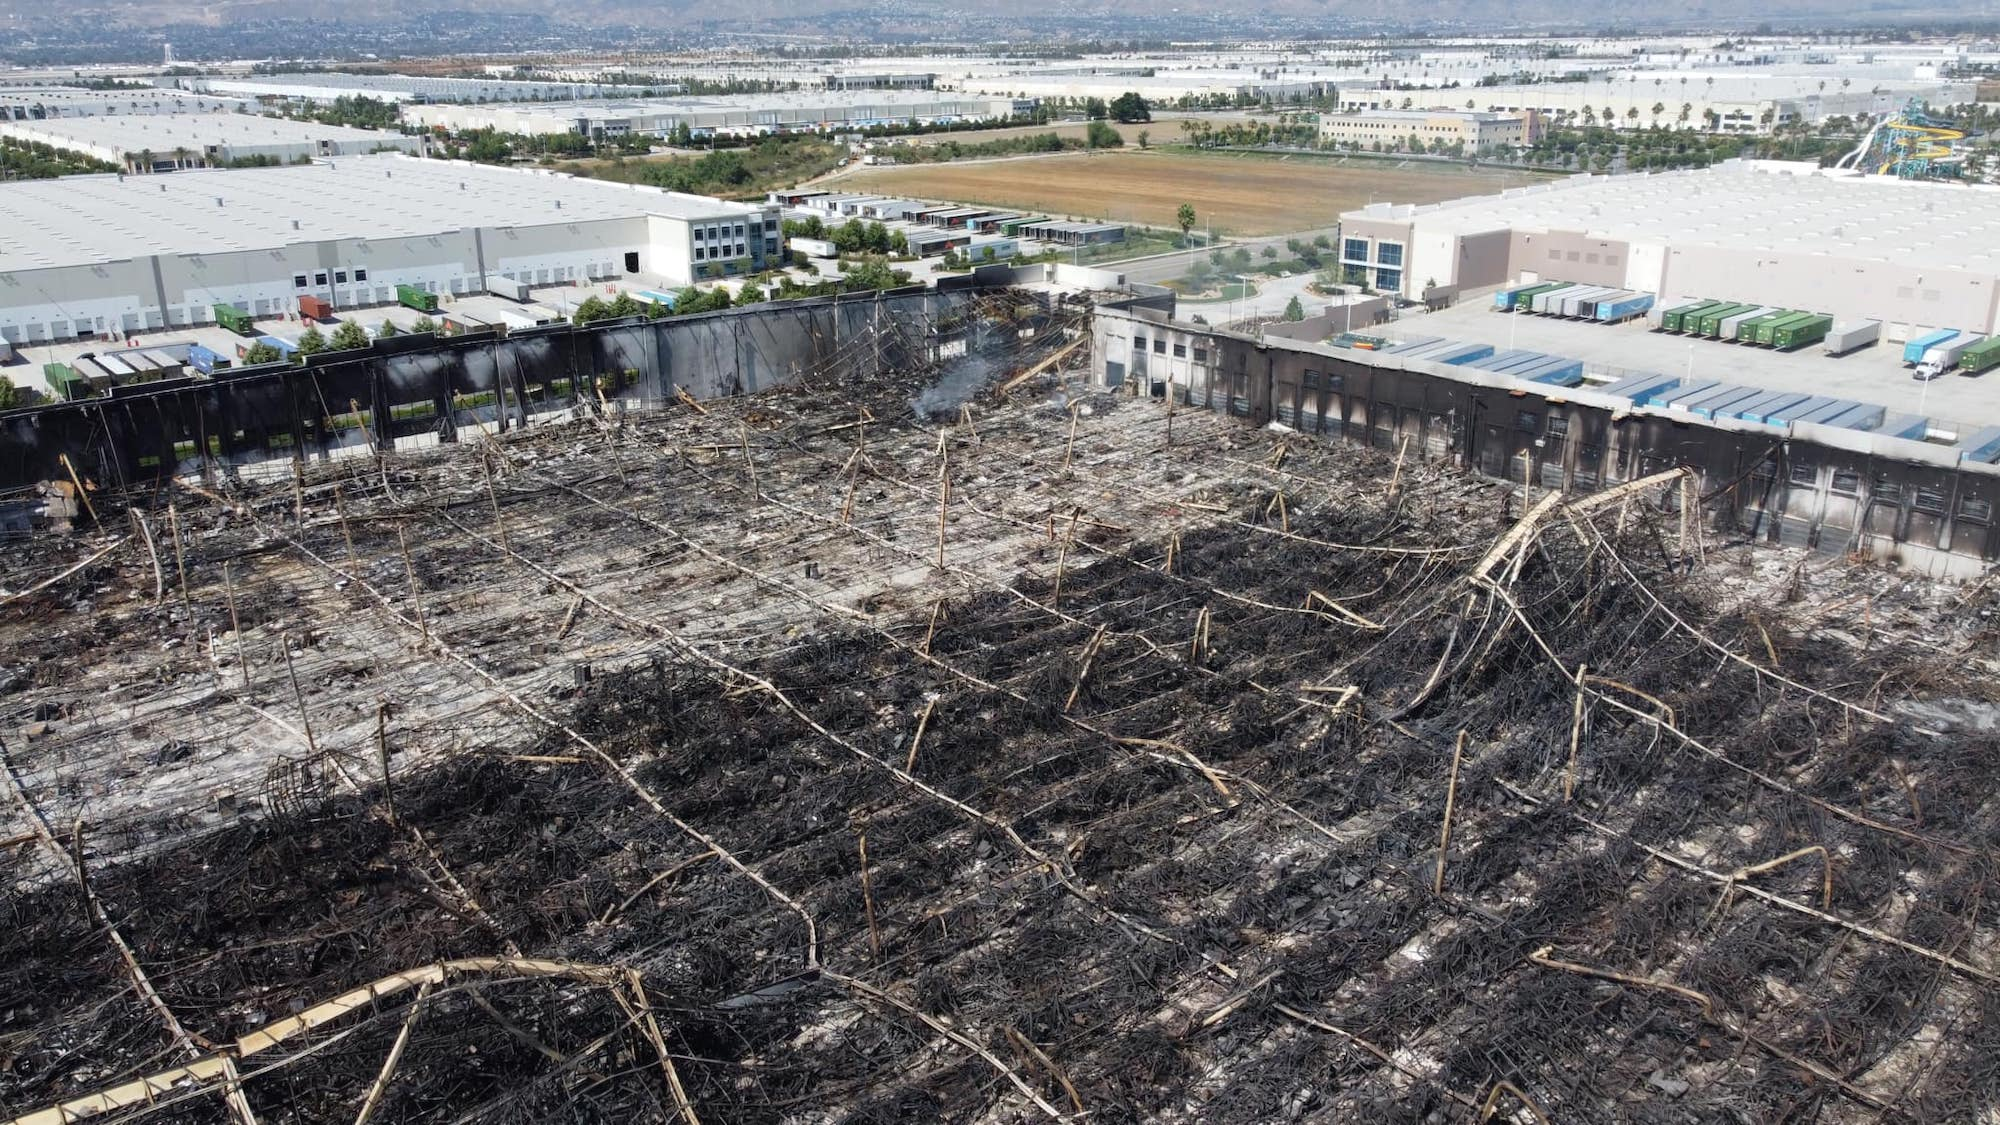 Drone photos show burned-down Amazon distribution center in Redlands, California